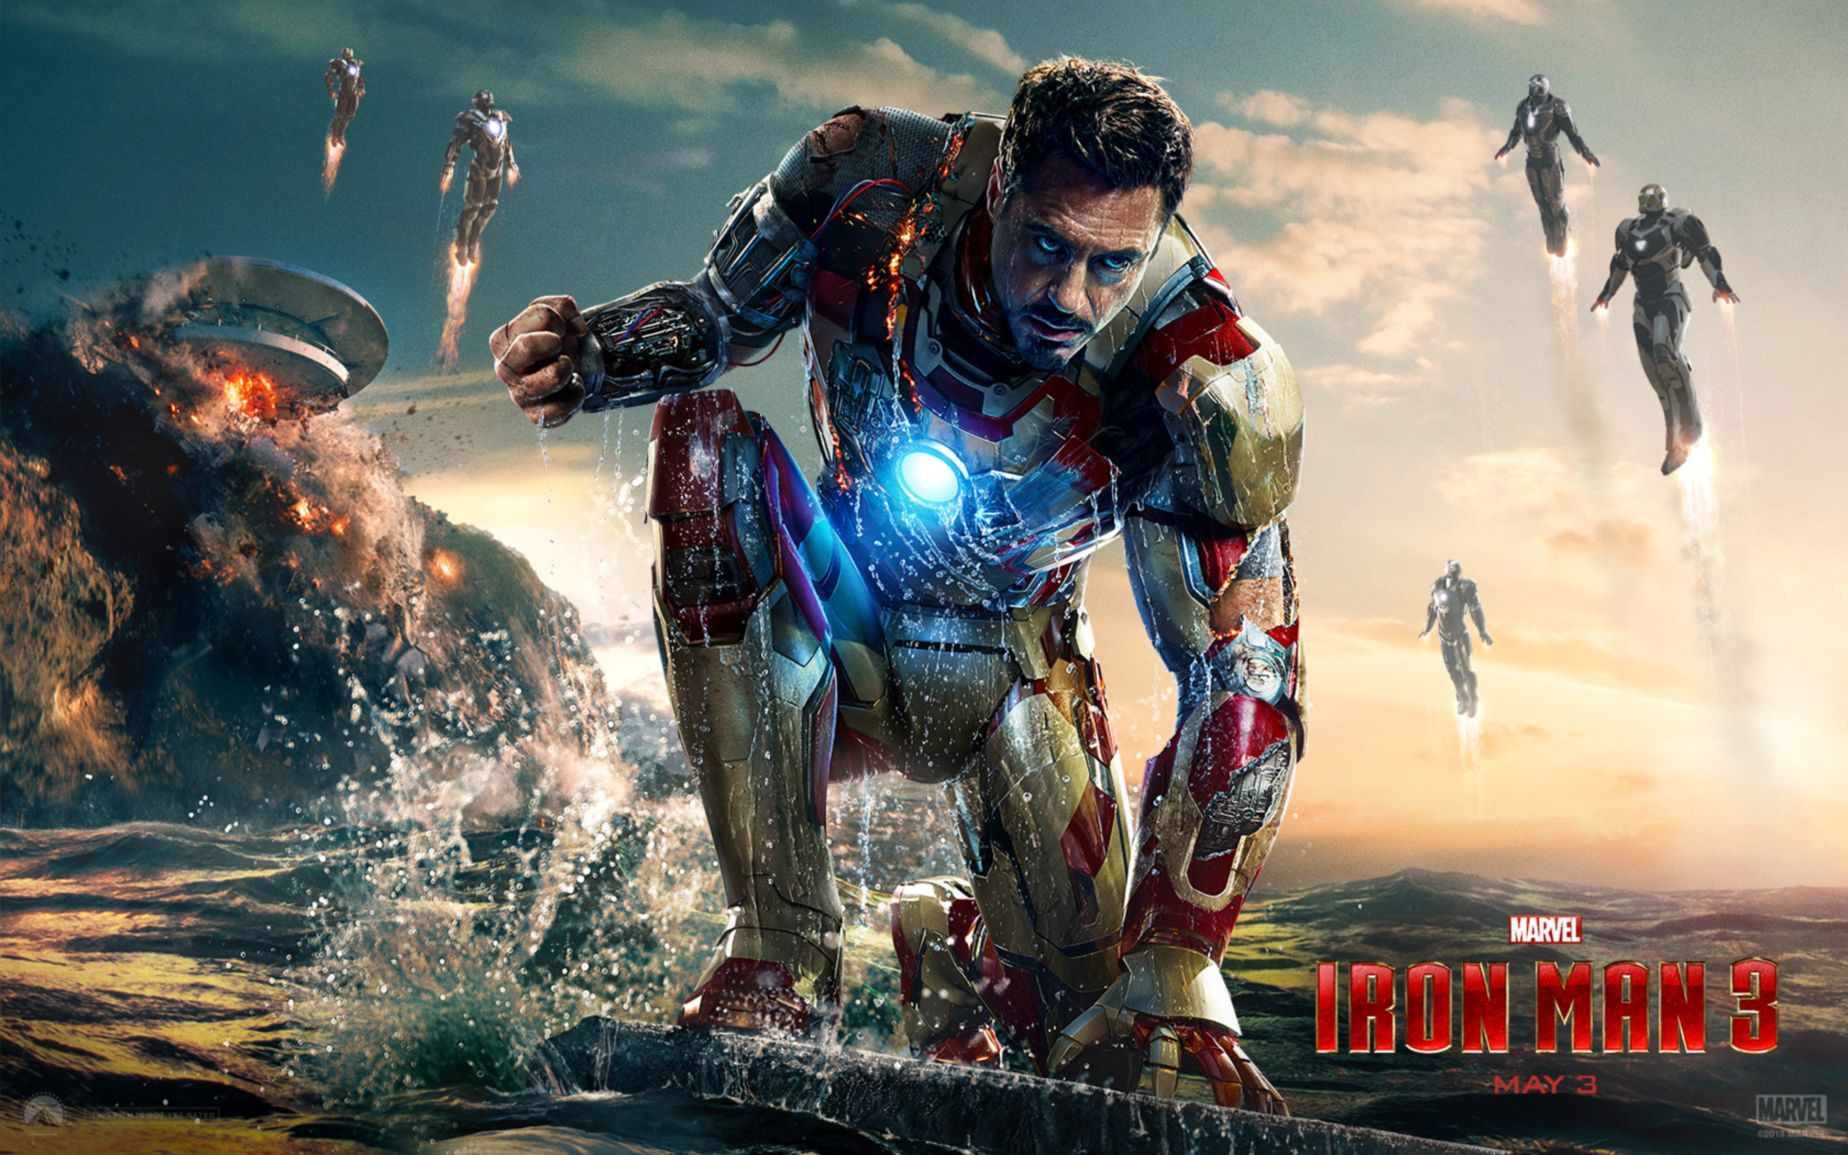 iron man 3 movie wide wallpaper: desktop hd wallpaper - download